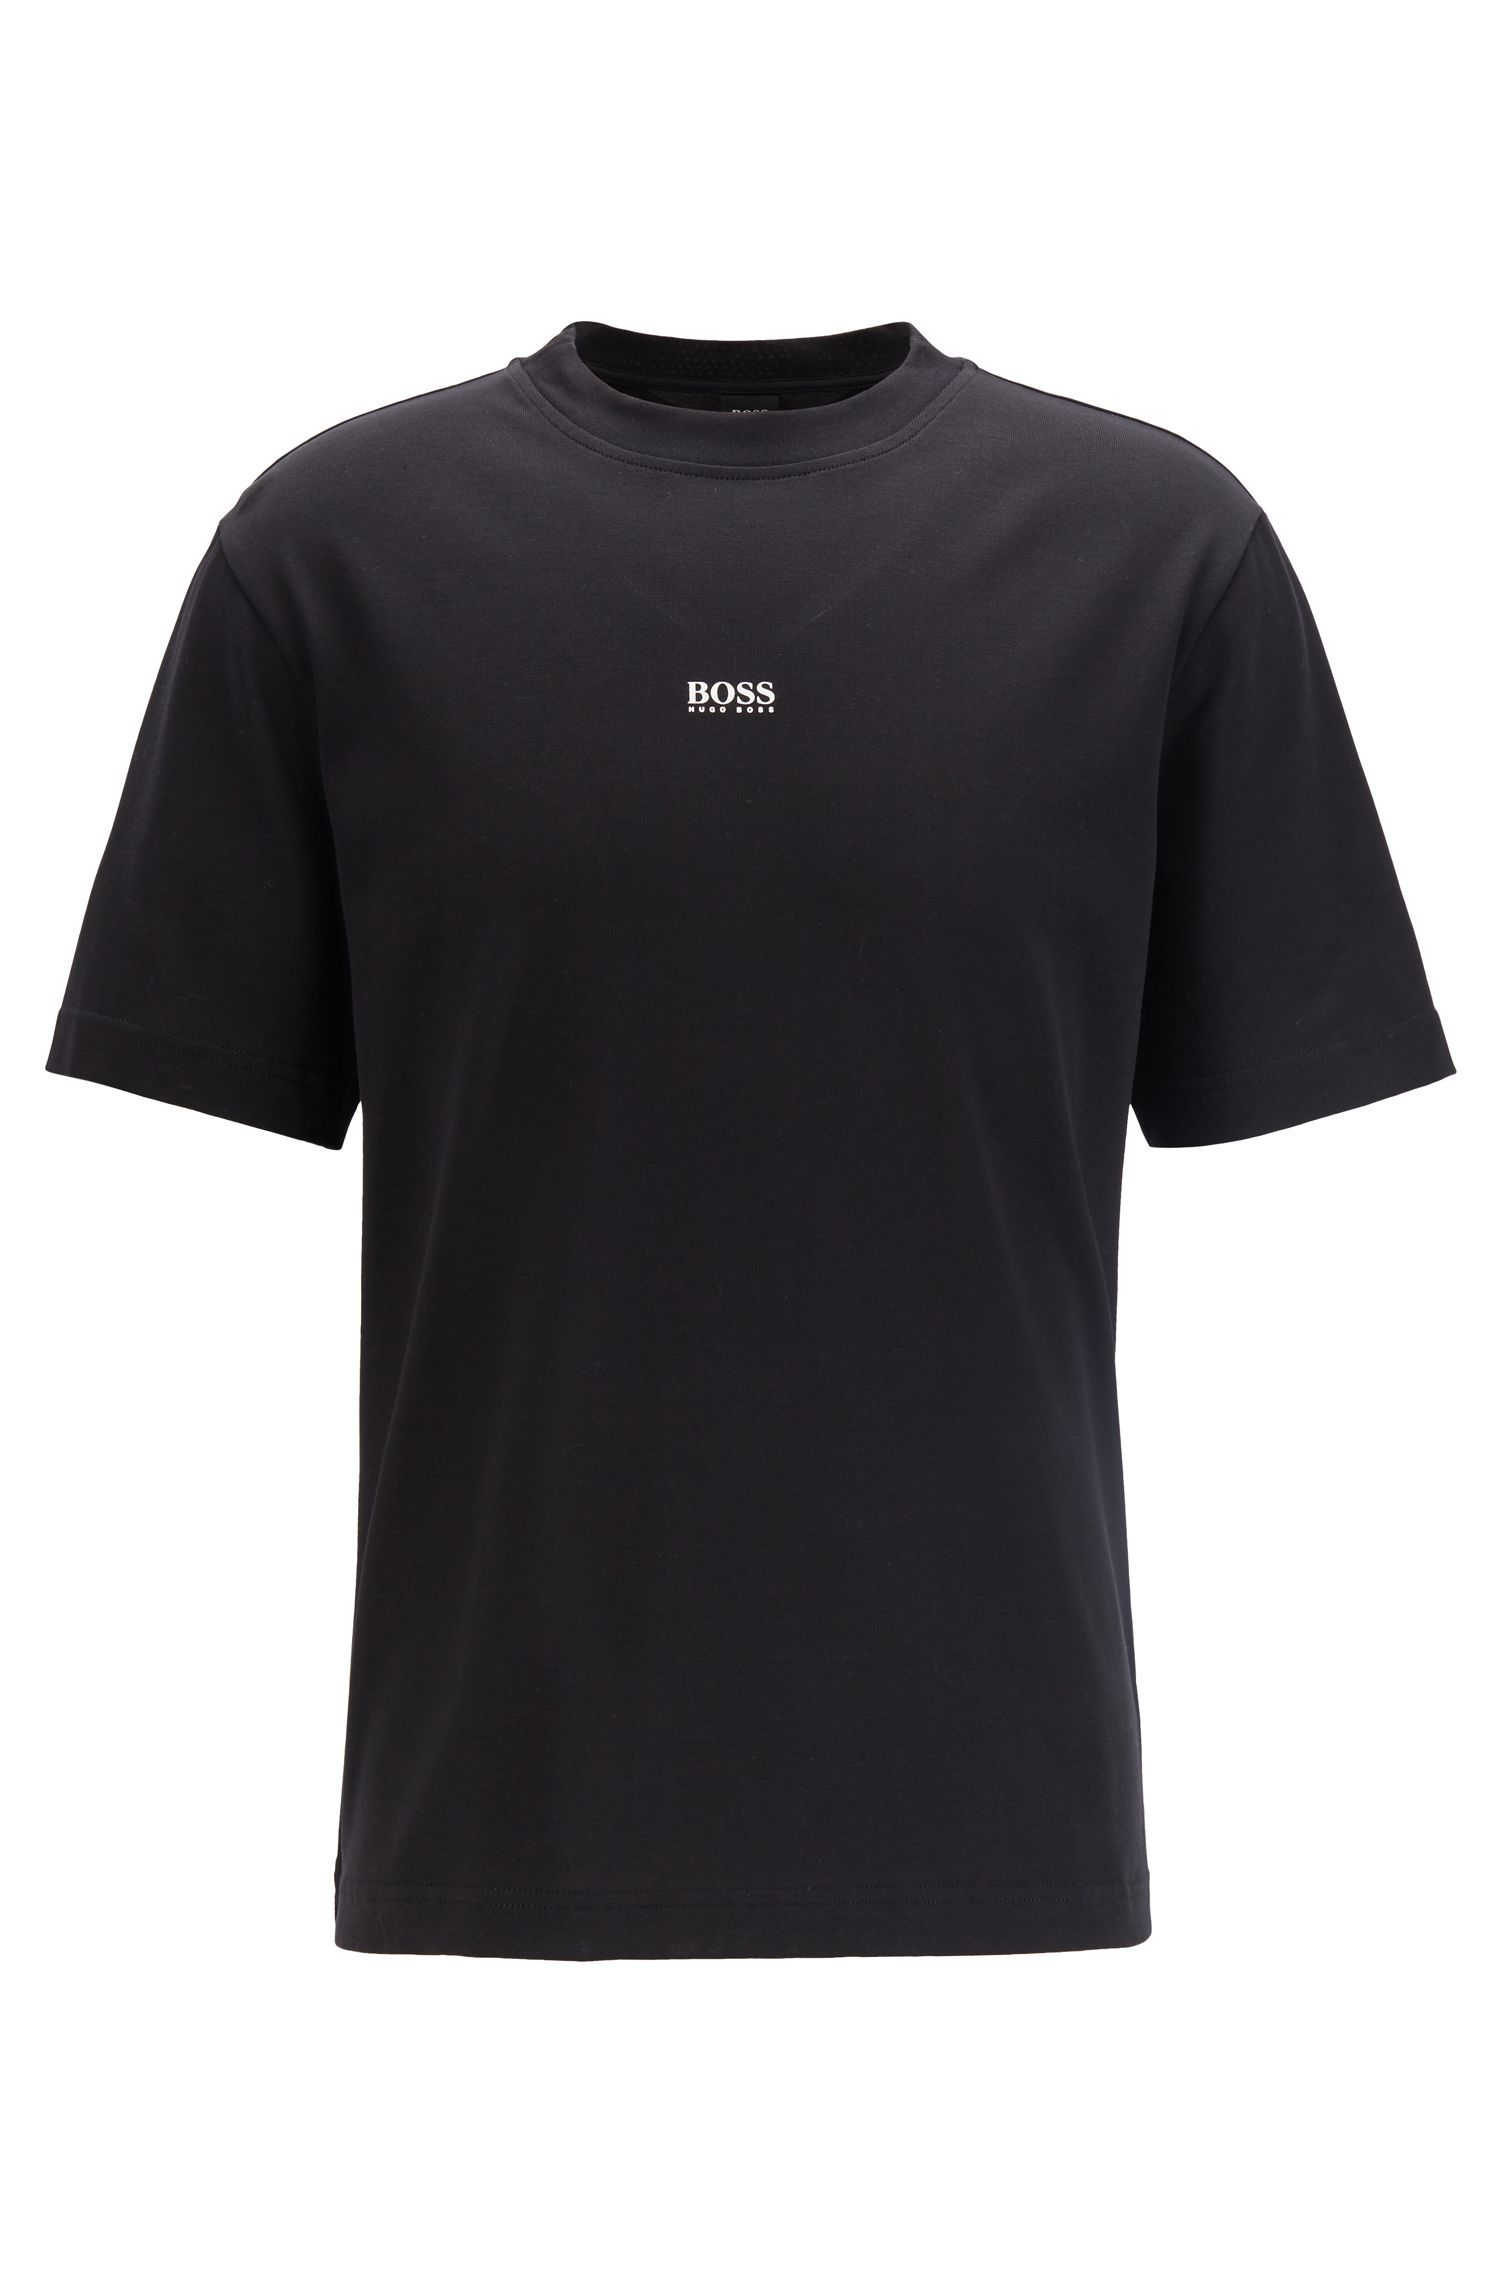 Relaxed-fit T-shirt in paper-touch cotton with logo, Black